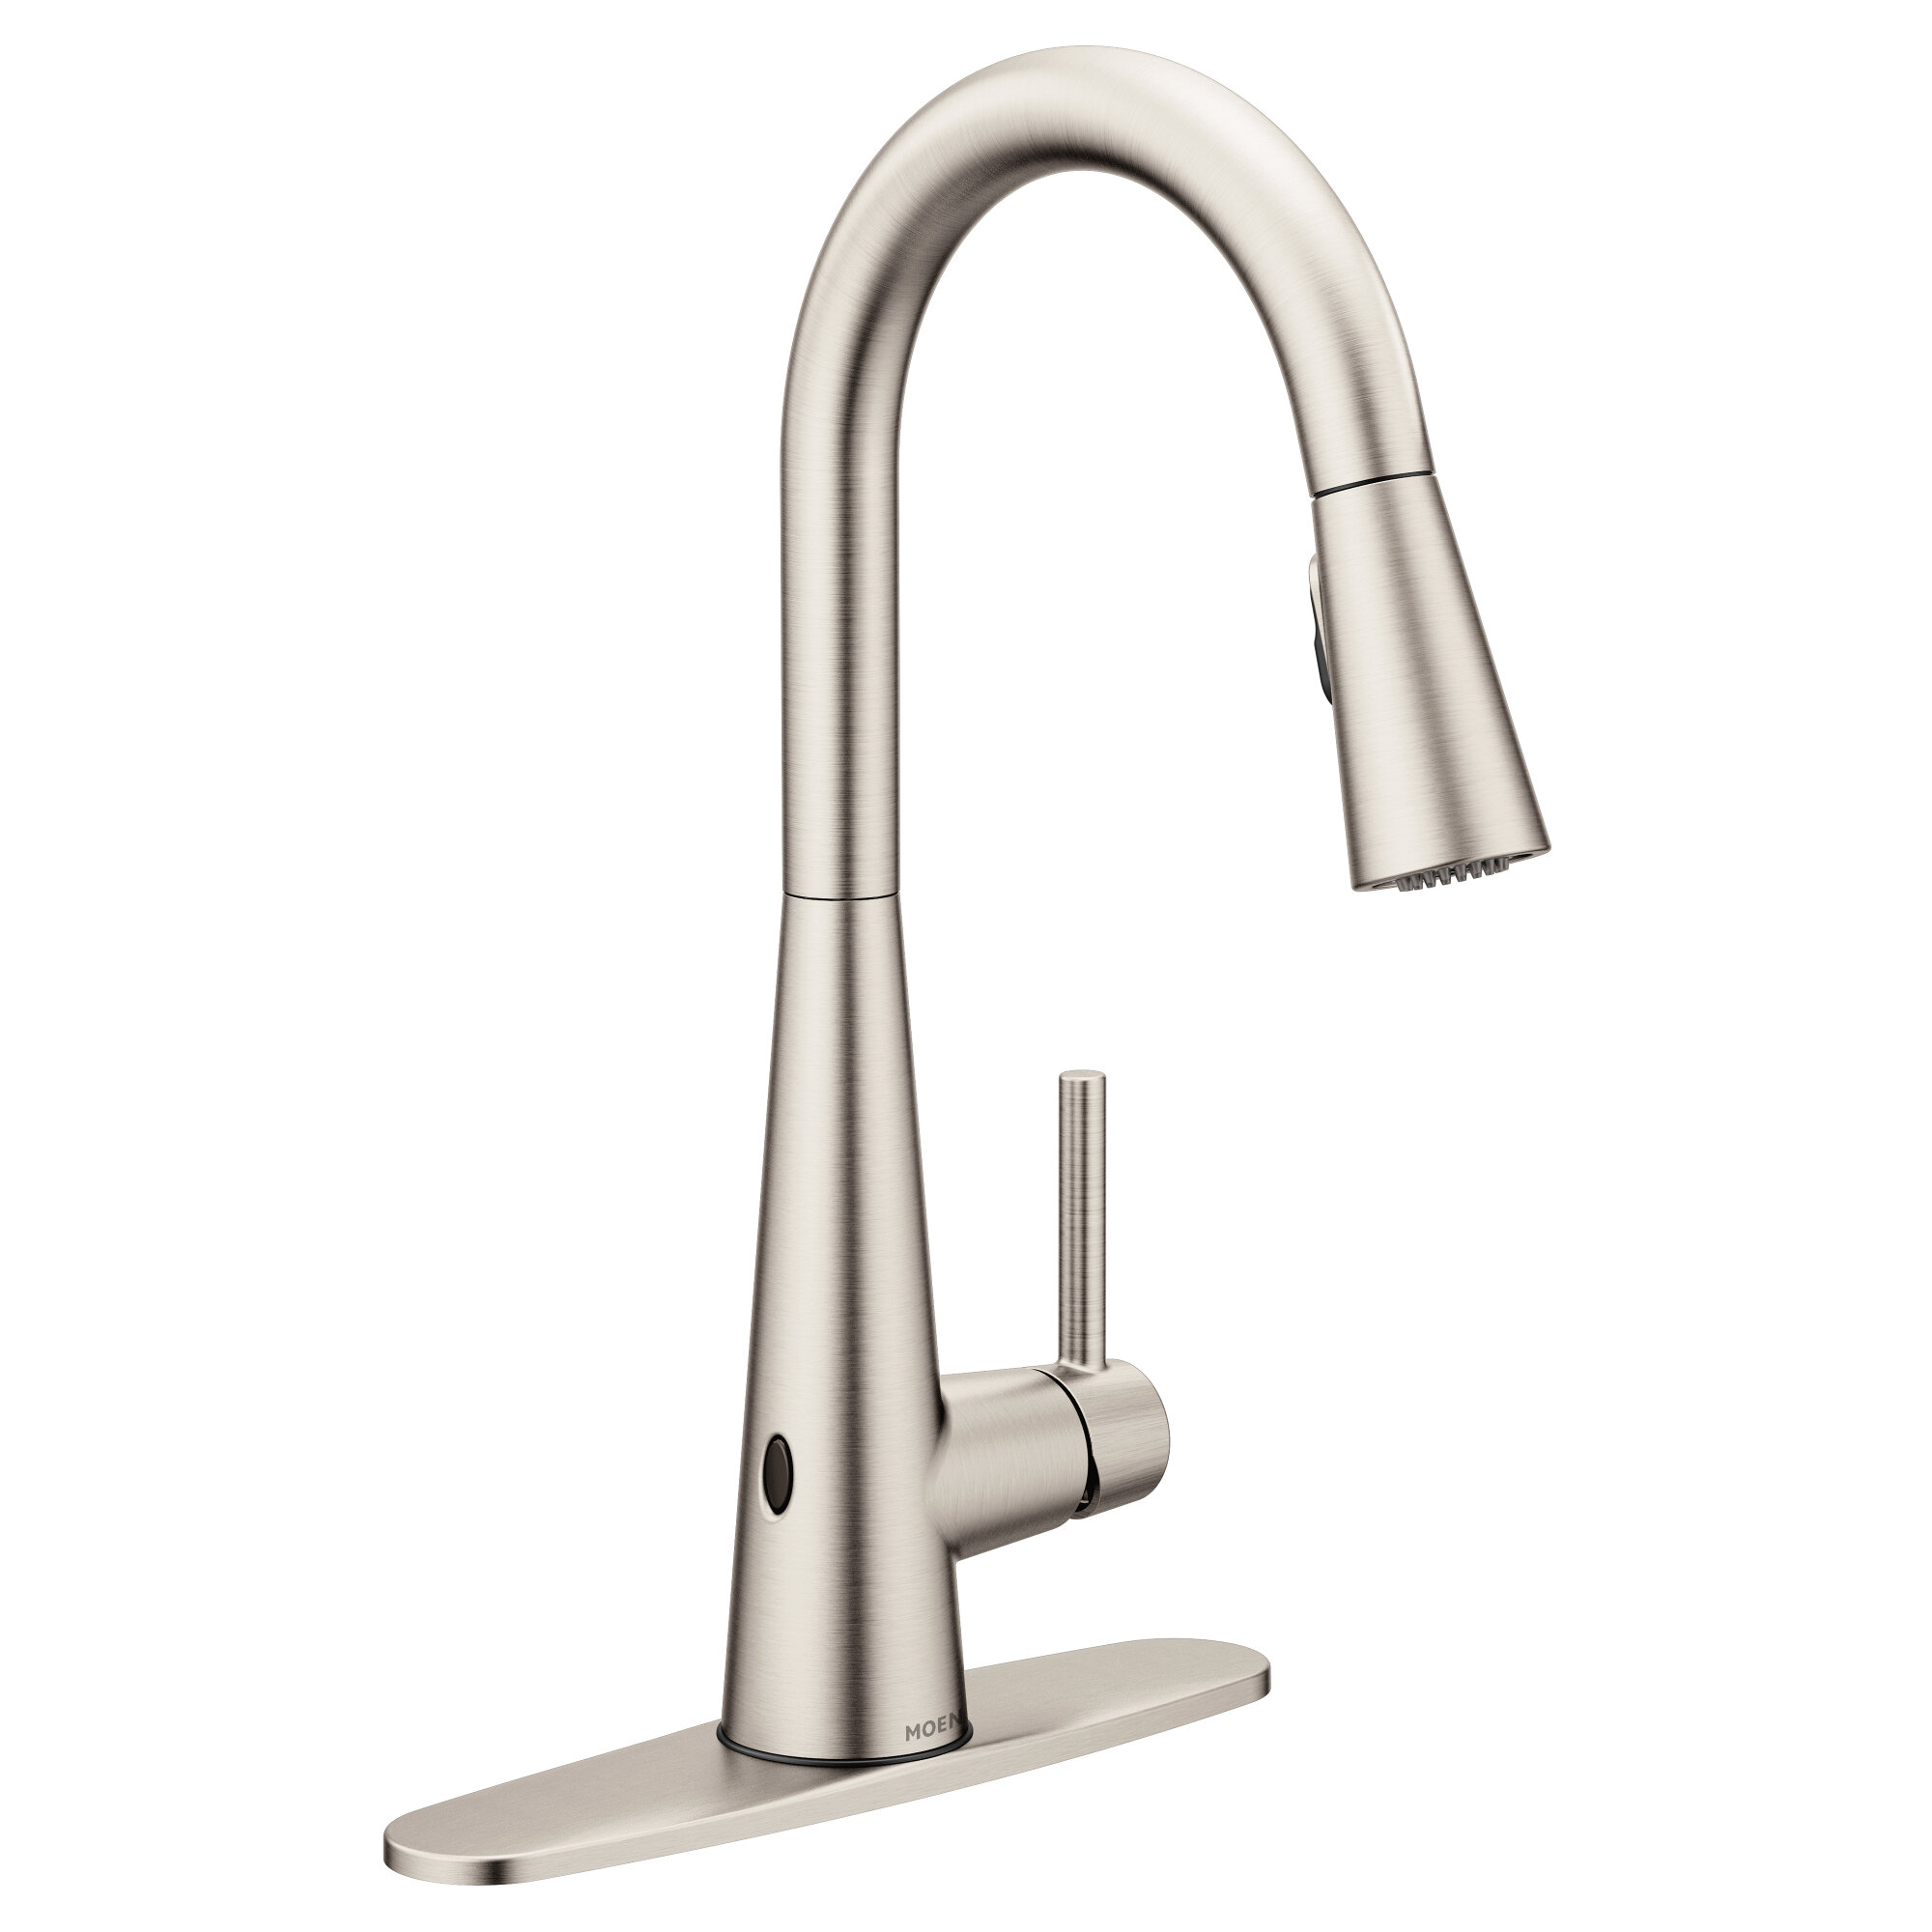 Moen Sleek Pull Down Touchless Single Handle Kitchen Faucet with ...